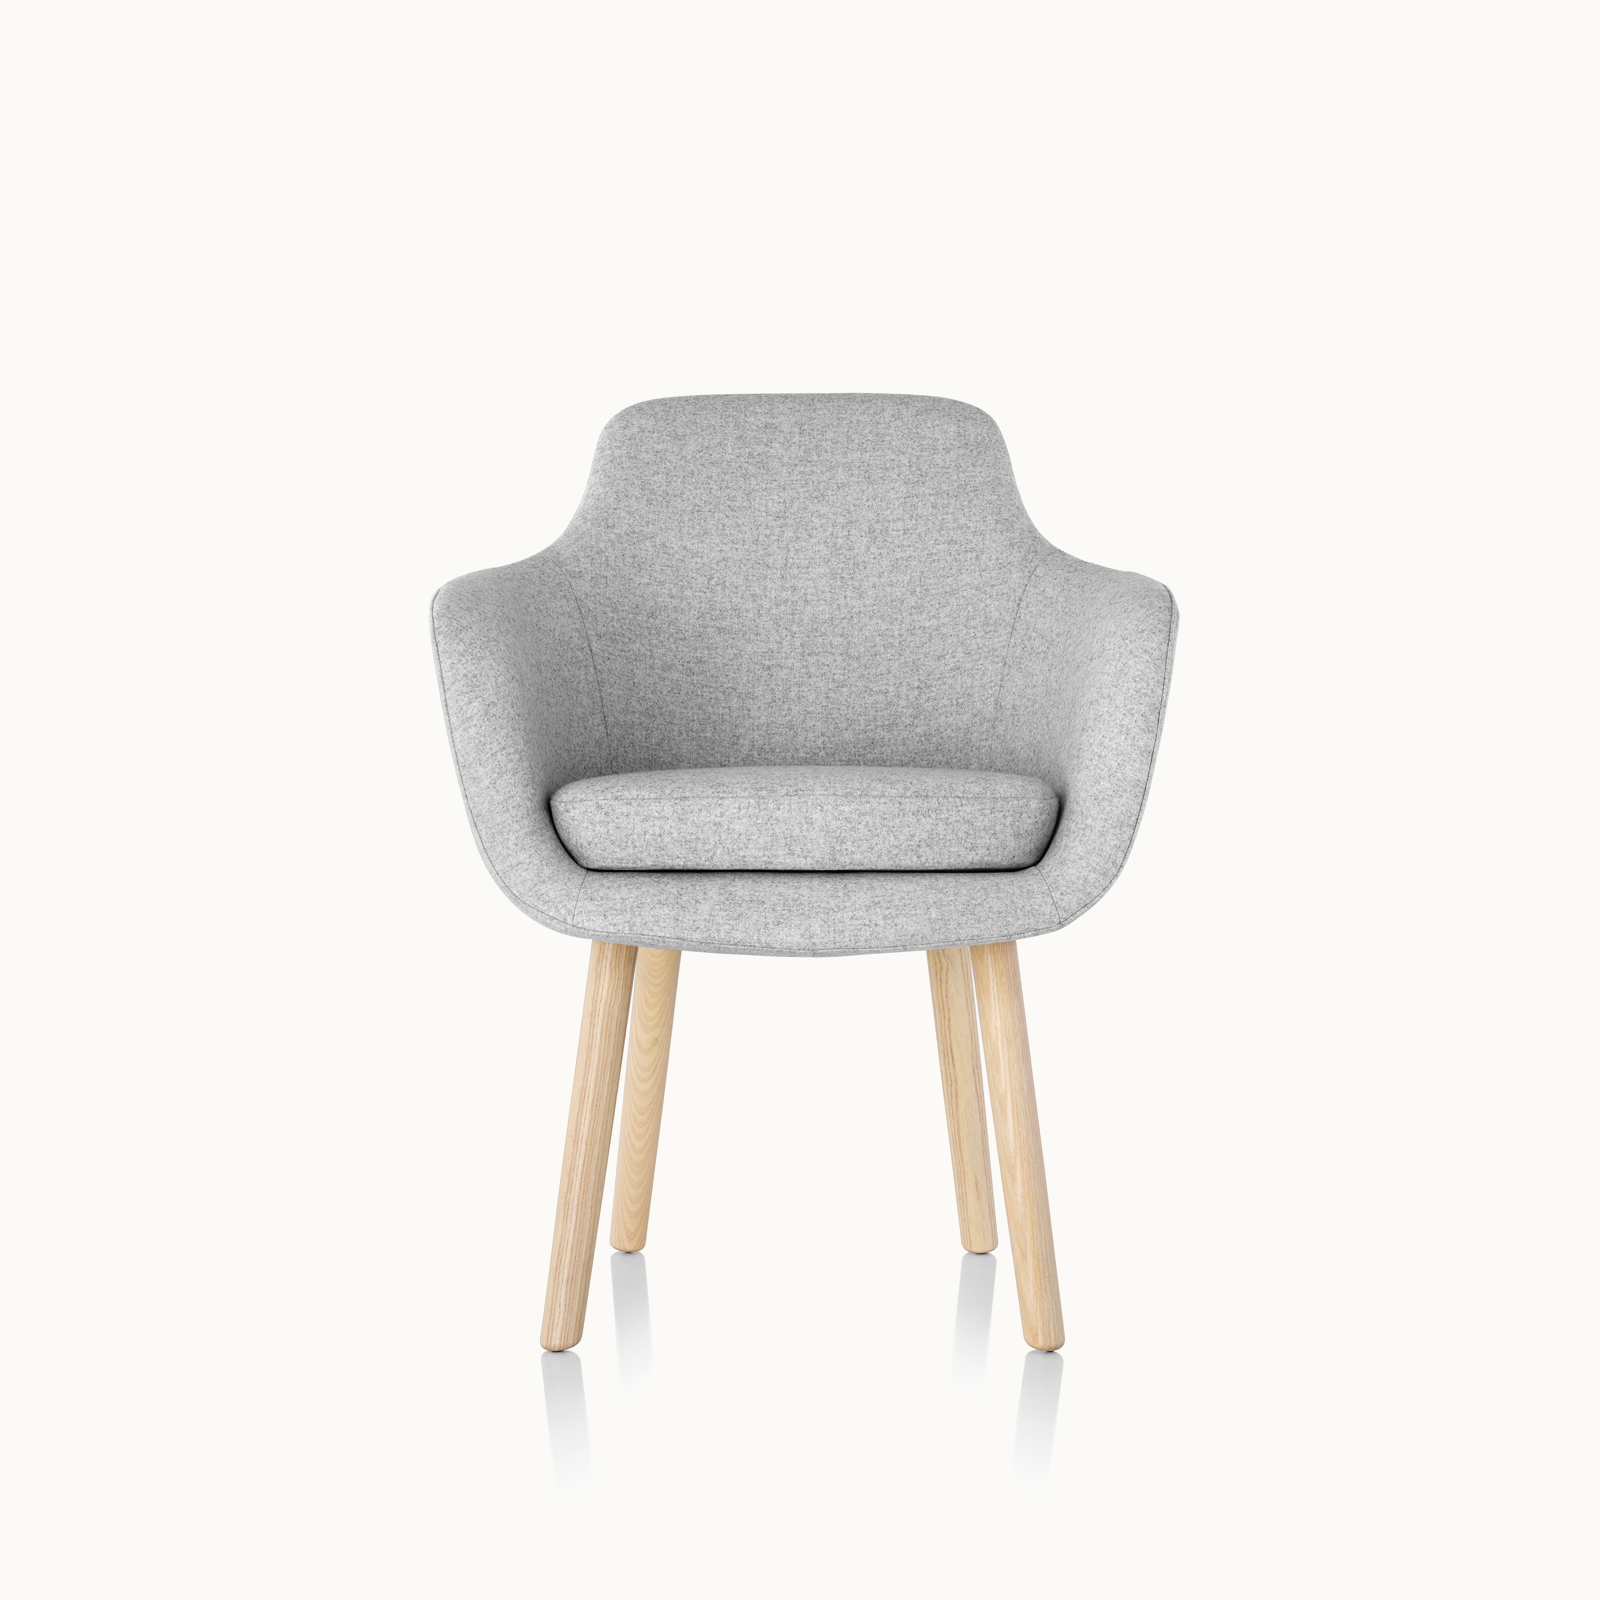 A Saiba Side Chair with light gray upholstery and wood legs in a light finish, viewed from the front.